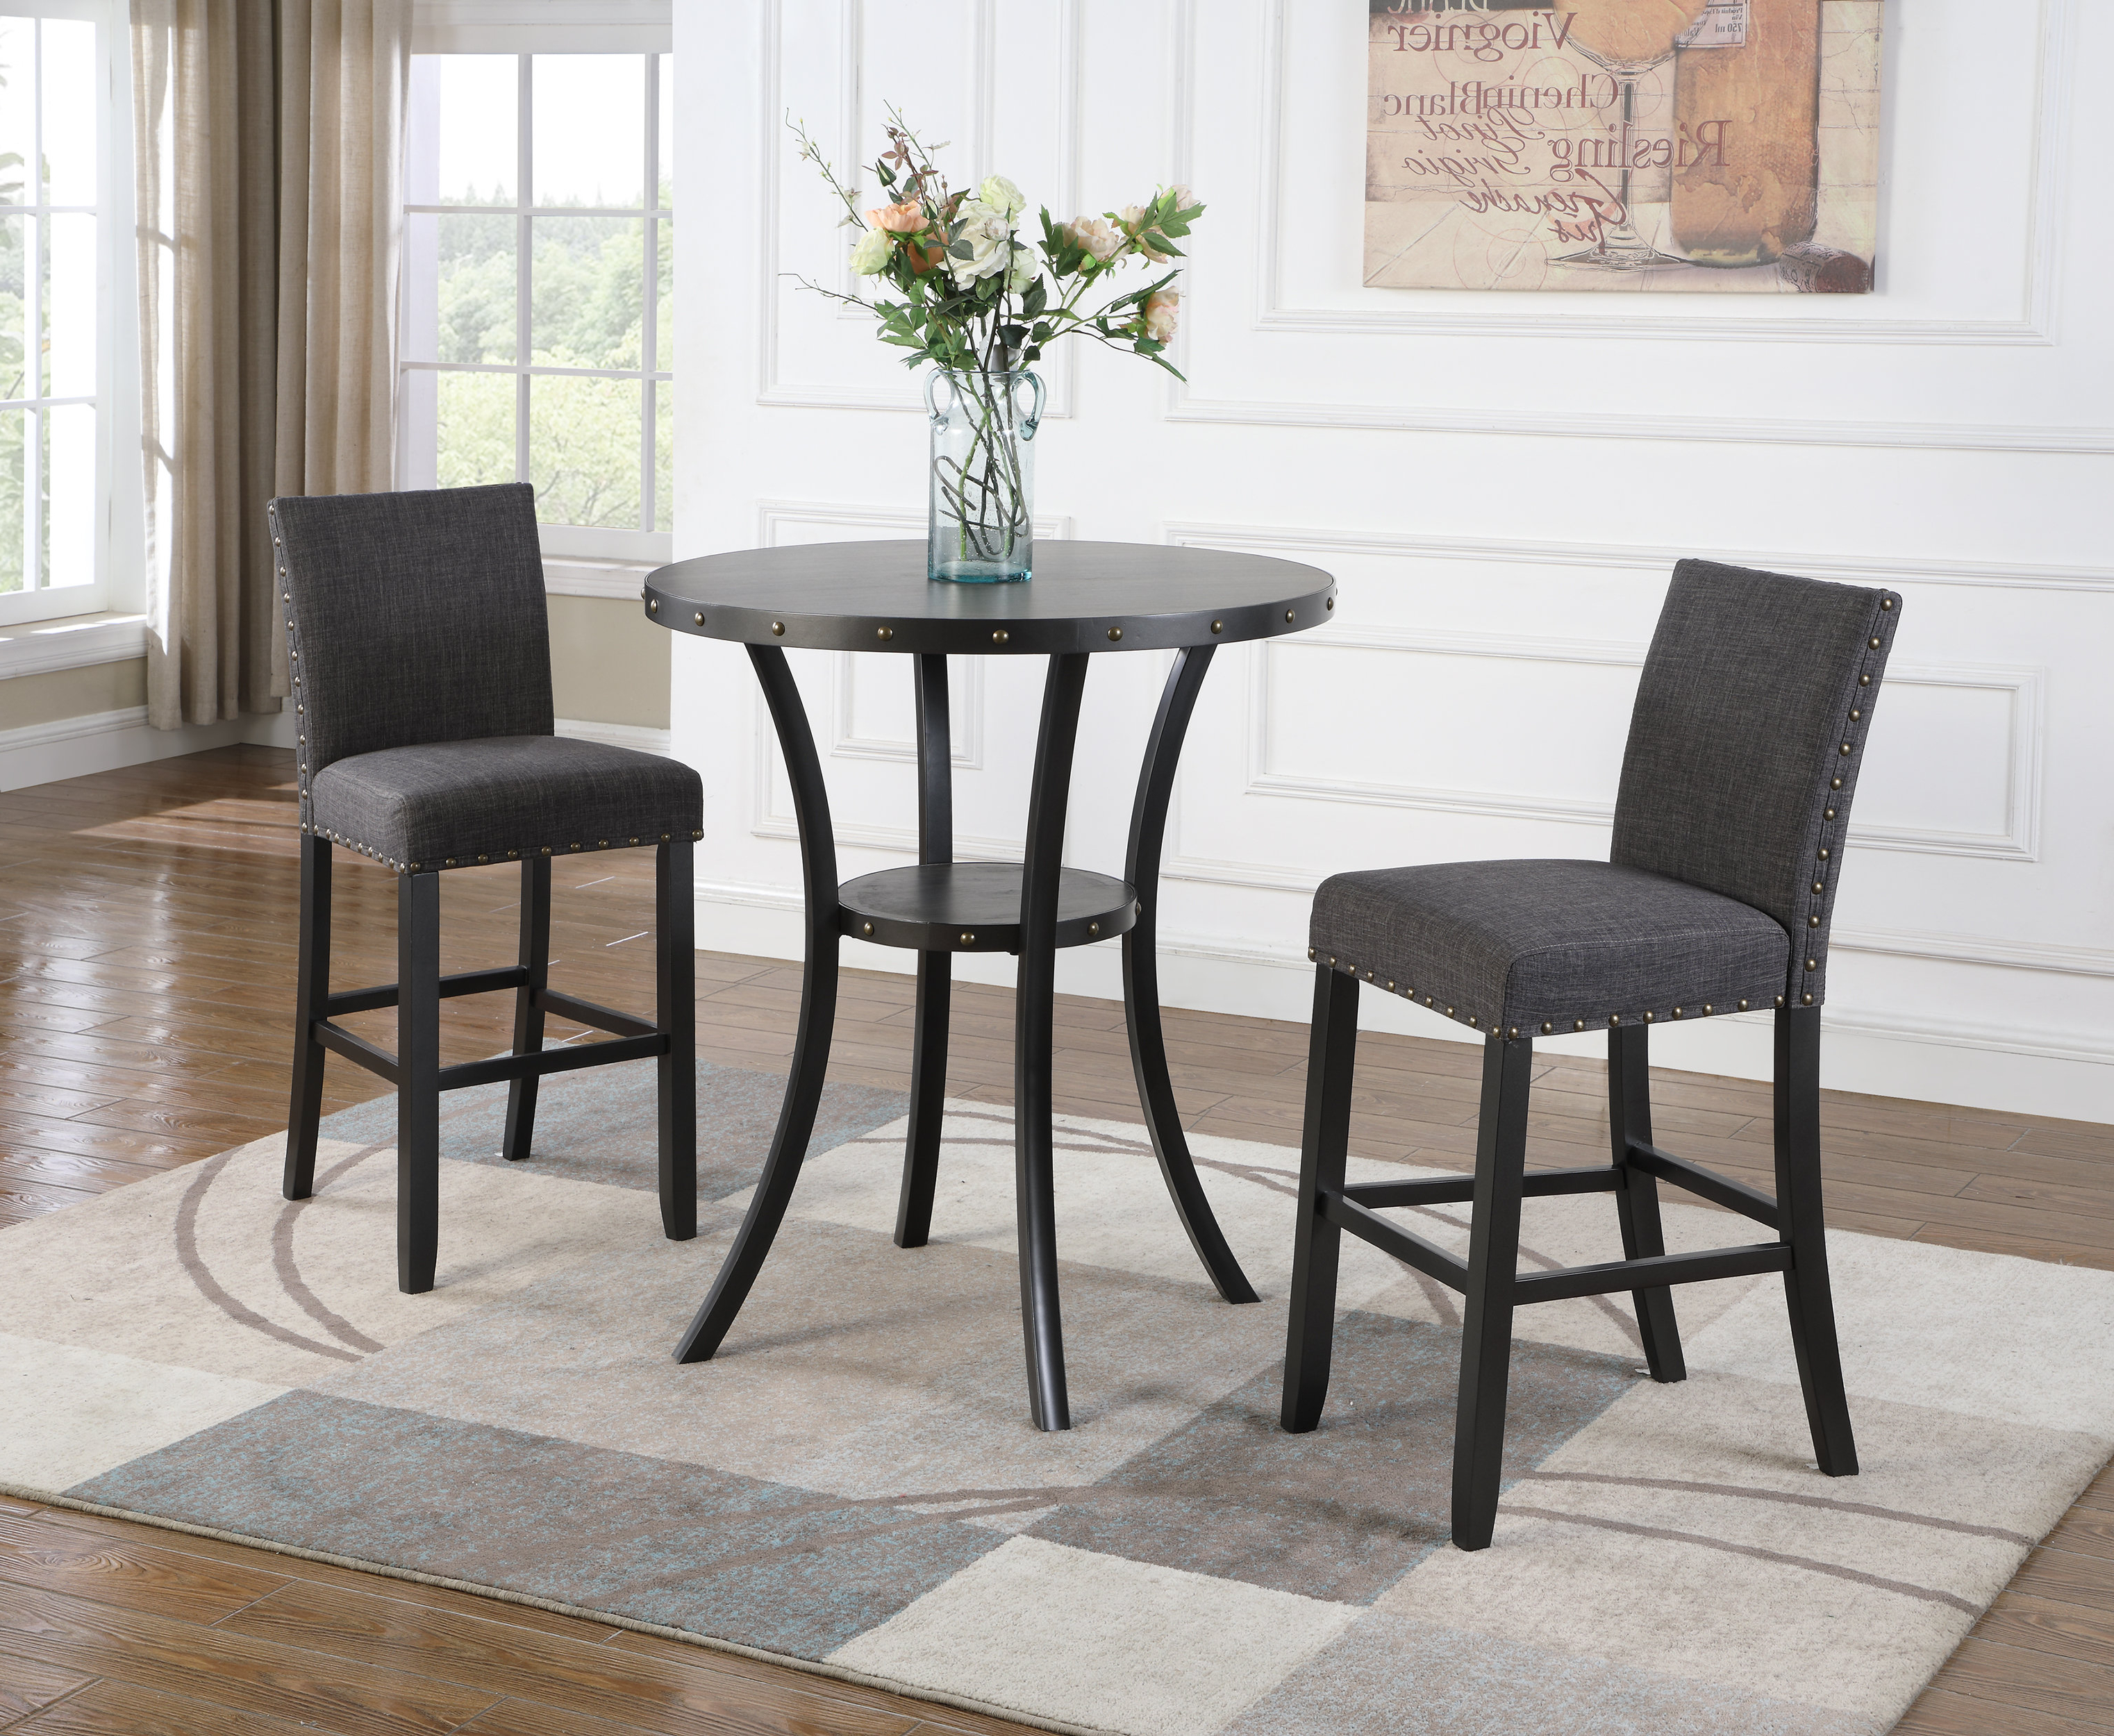 Smyrna 3 Piece Dining Sets Intended For Latest Haysi 3 Piece Pub Table Set & Reviews (View 15 of 25)